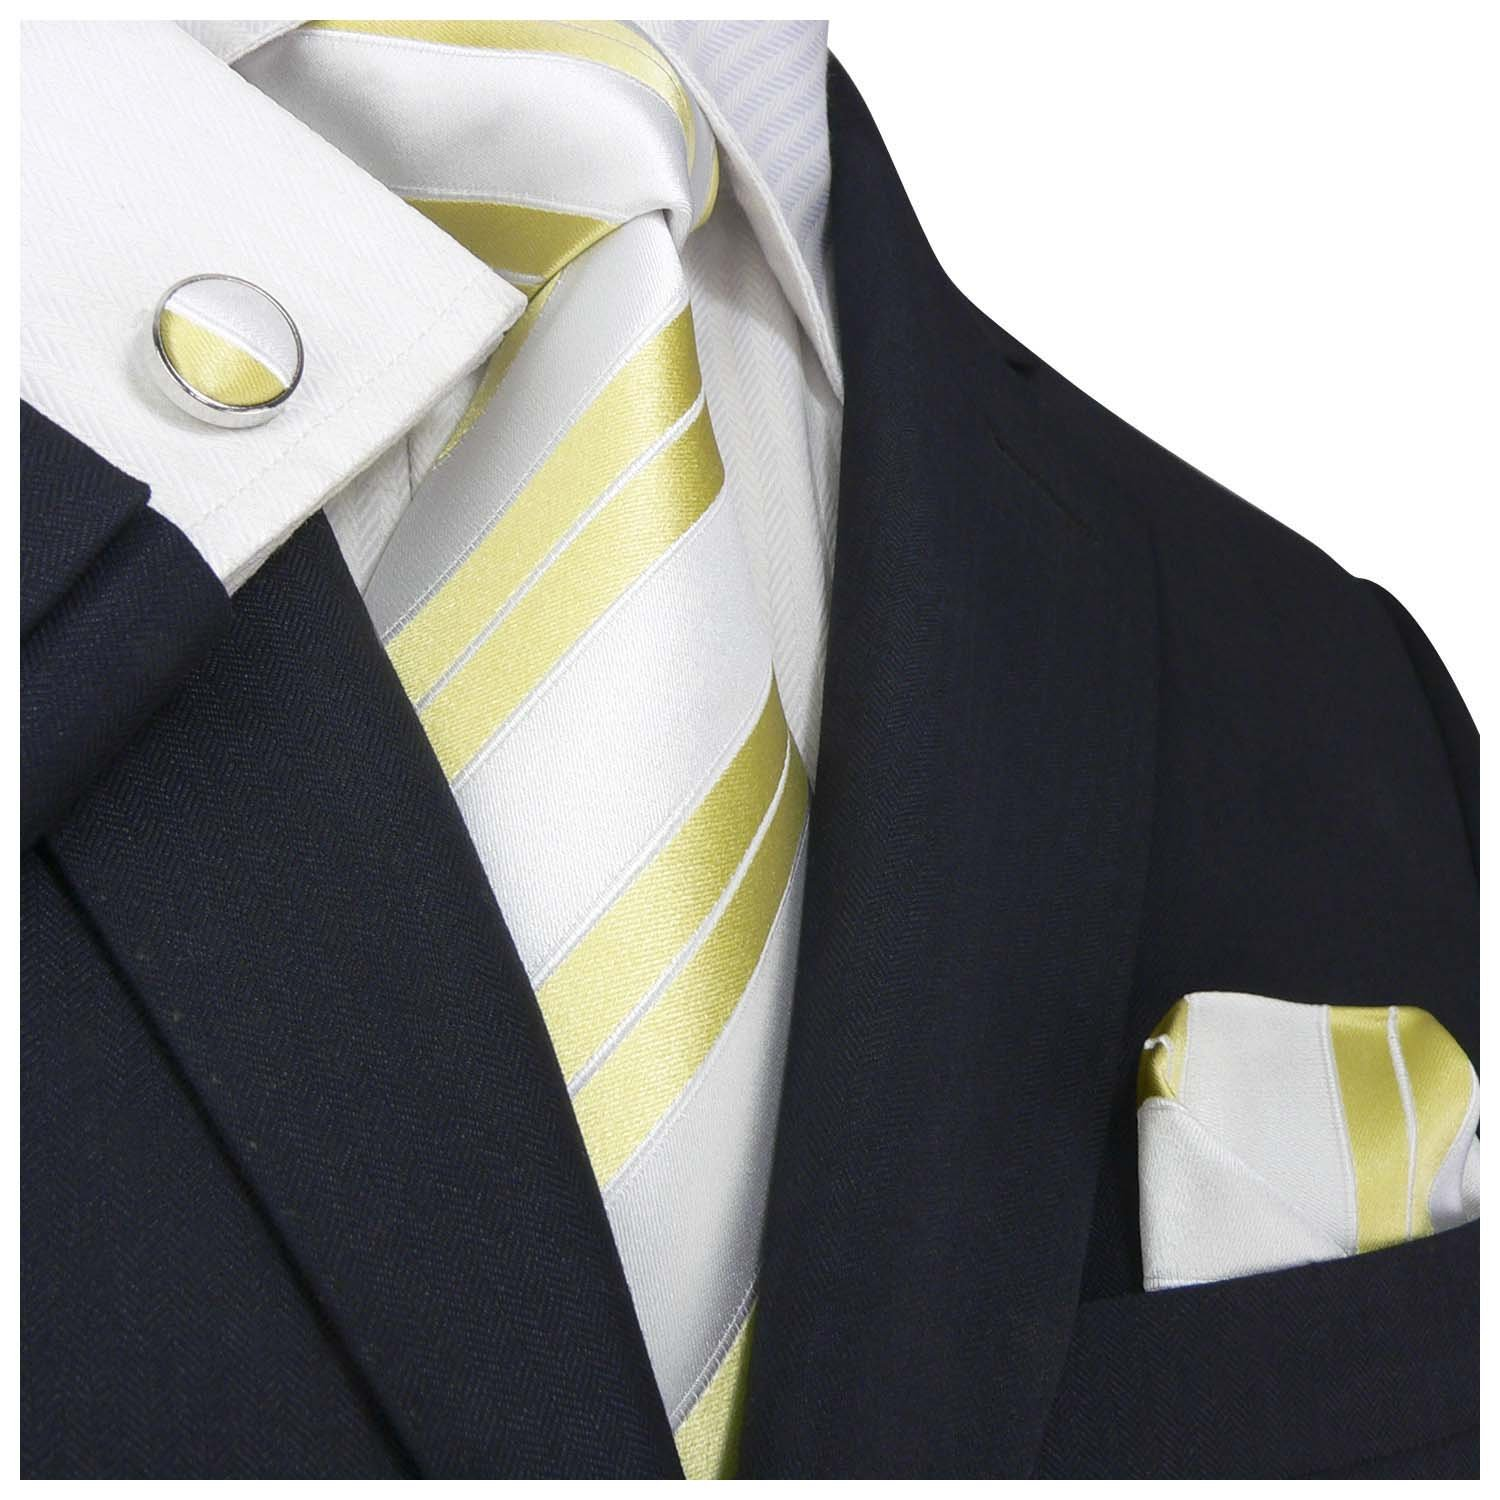 Landisun 44C Bright Blue Green Stripes Mens Silk Tie Set: Tie+Hanky+Cufflinks